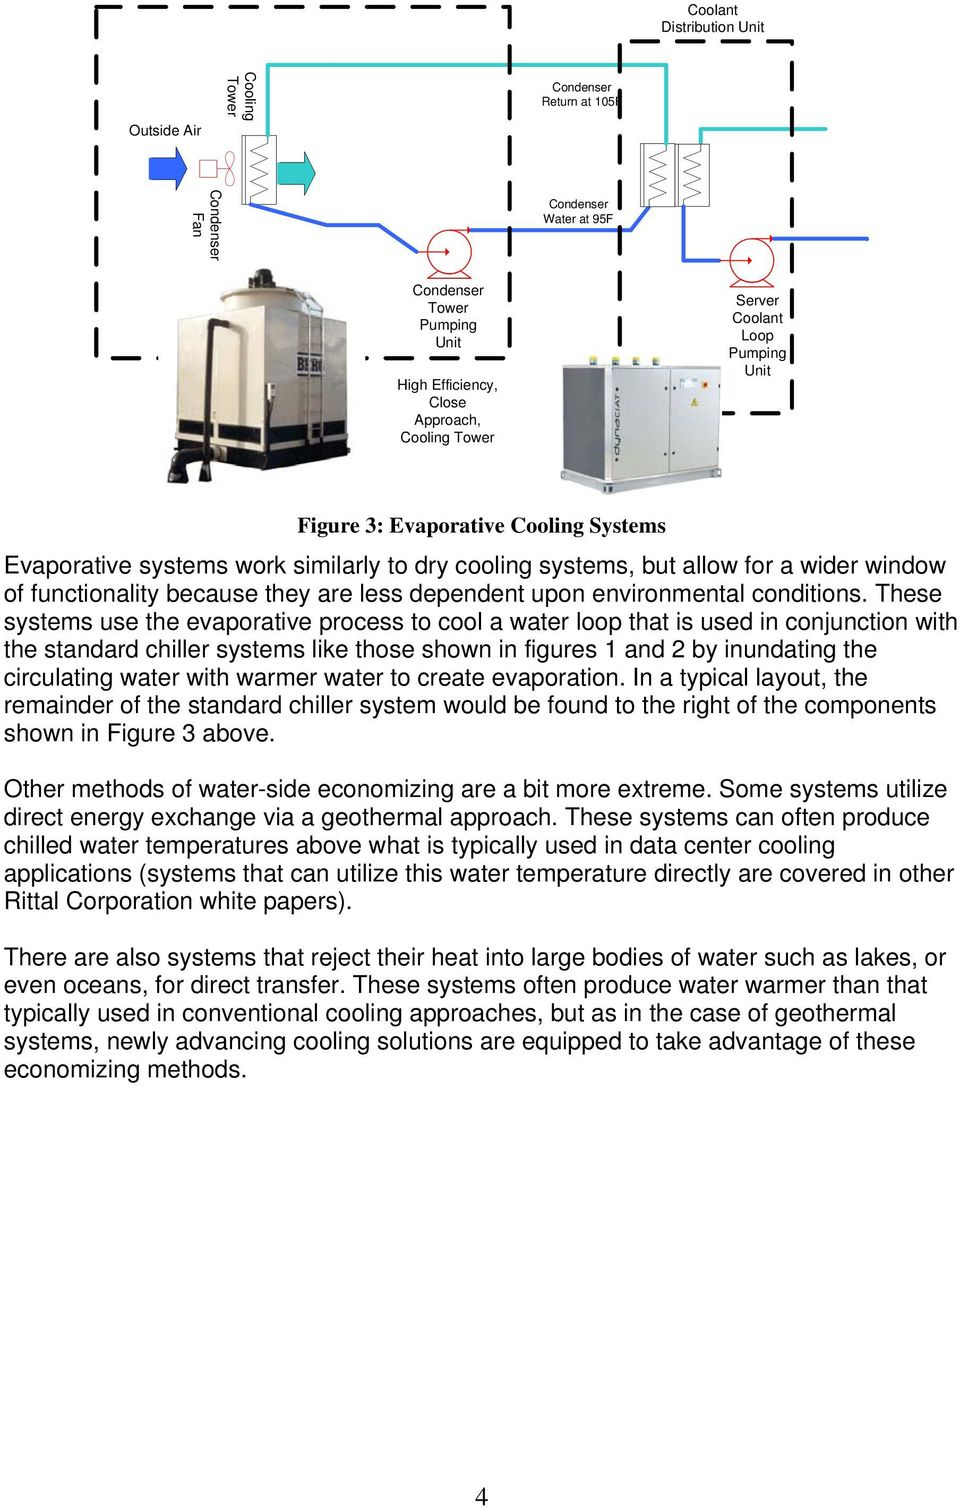 These systems use the evaporative process to cool a water loop that is used in conjunction with the standard chiller systems like those shown in figures 1 and 2 by inundating the circulating water